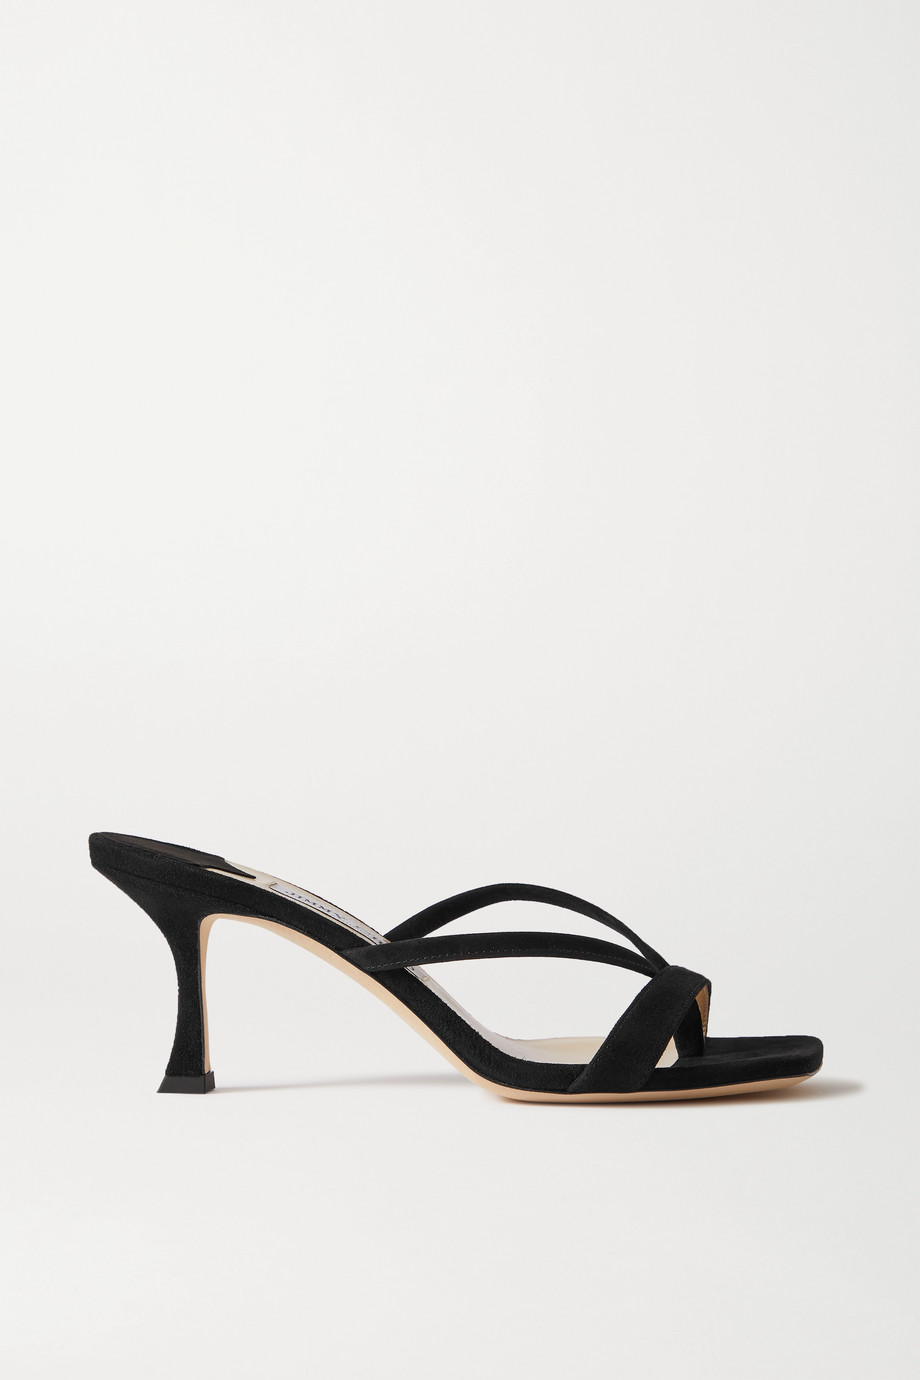 Jimmy Choo Maelie 70 suede sandals